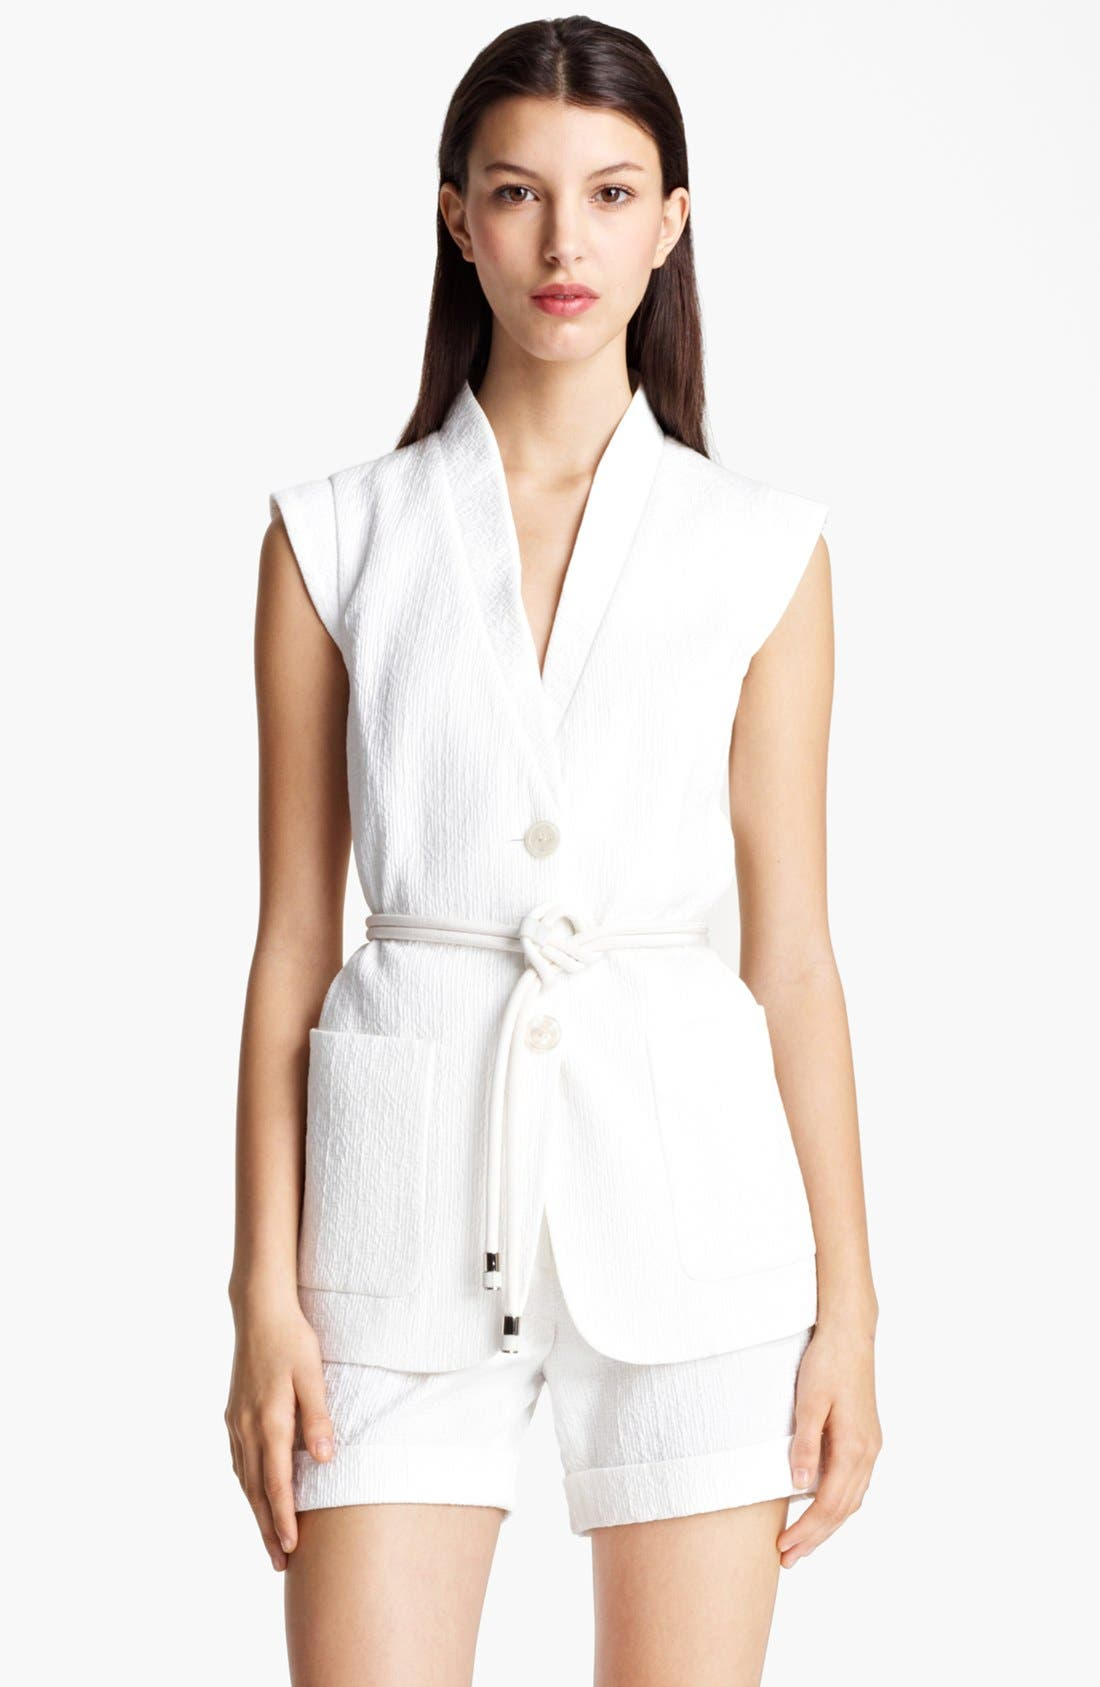 Main Image - Armani Collezioni Embroidered Vest with Rope Belt